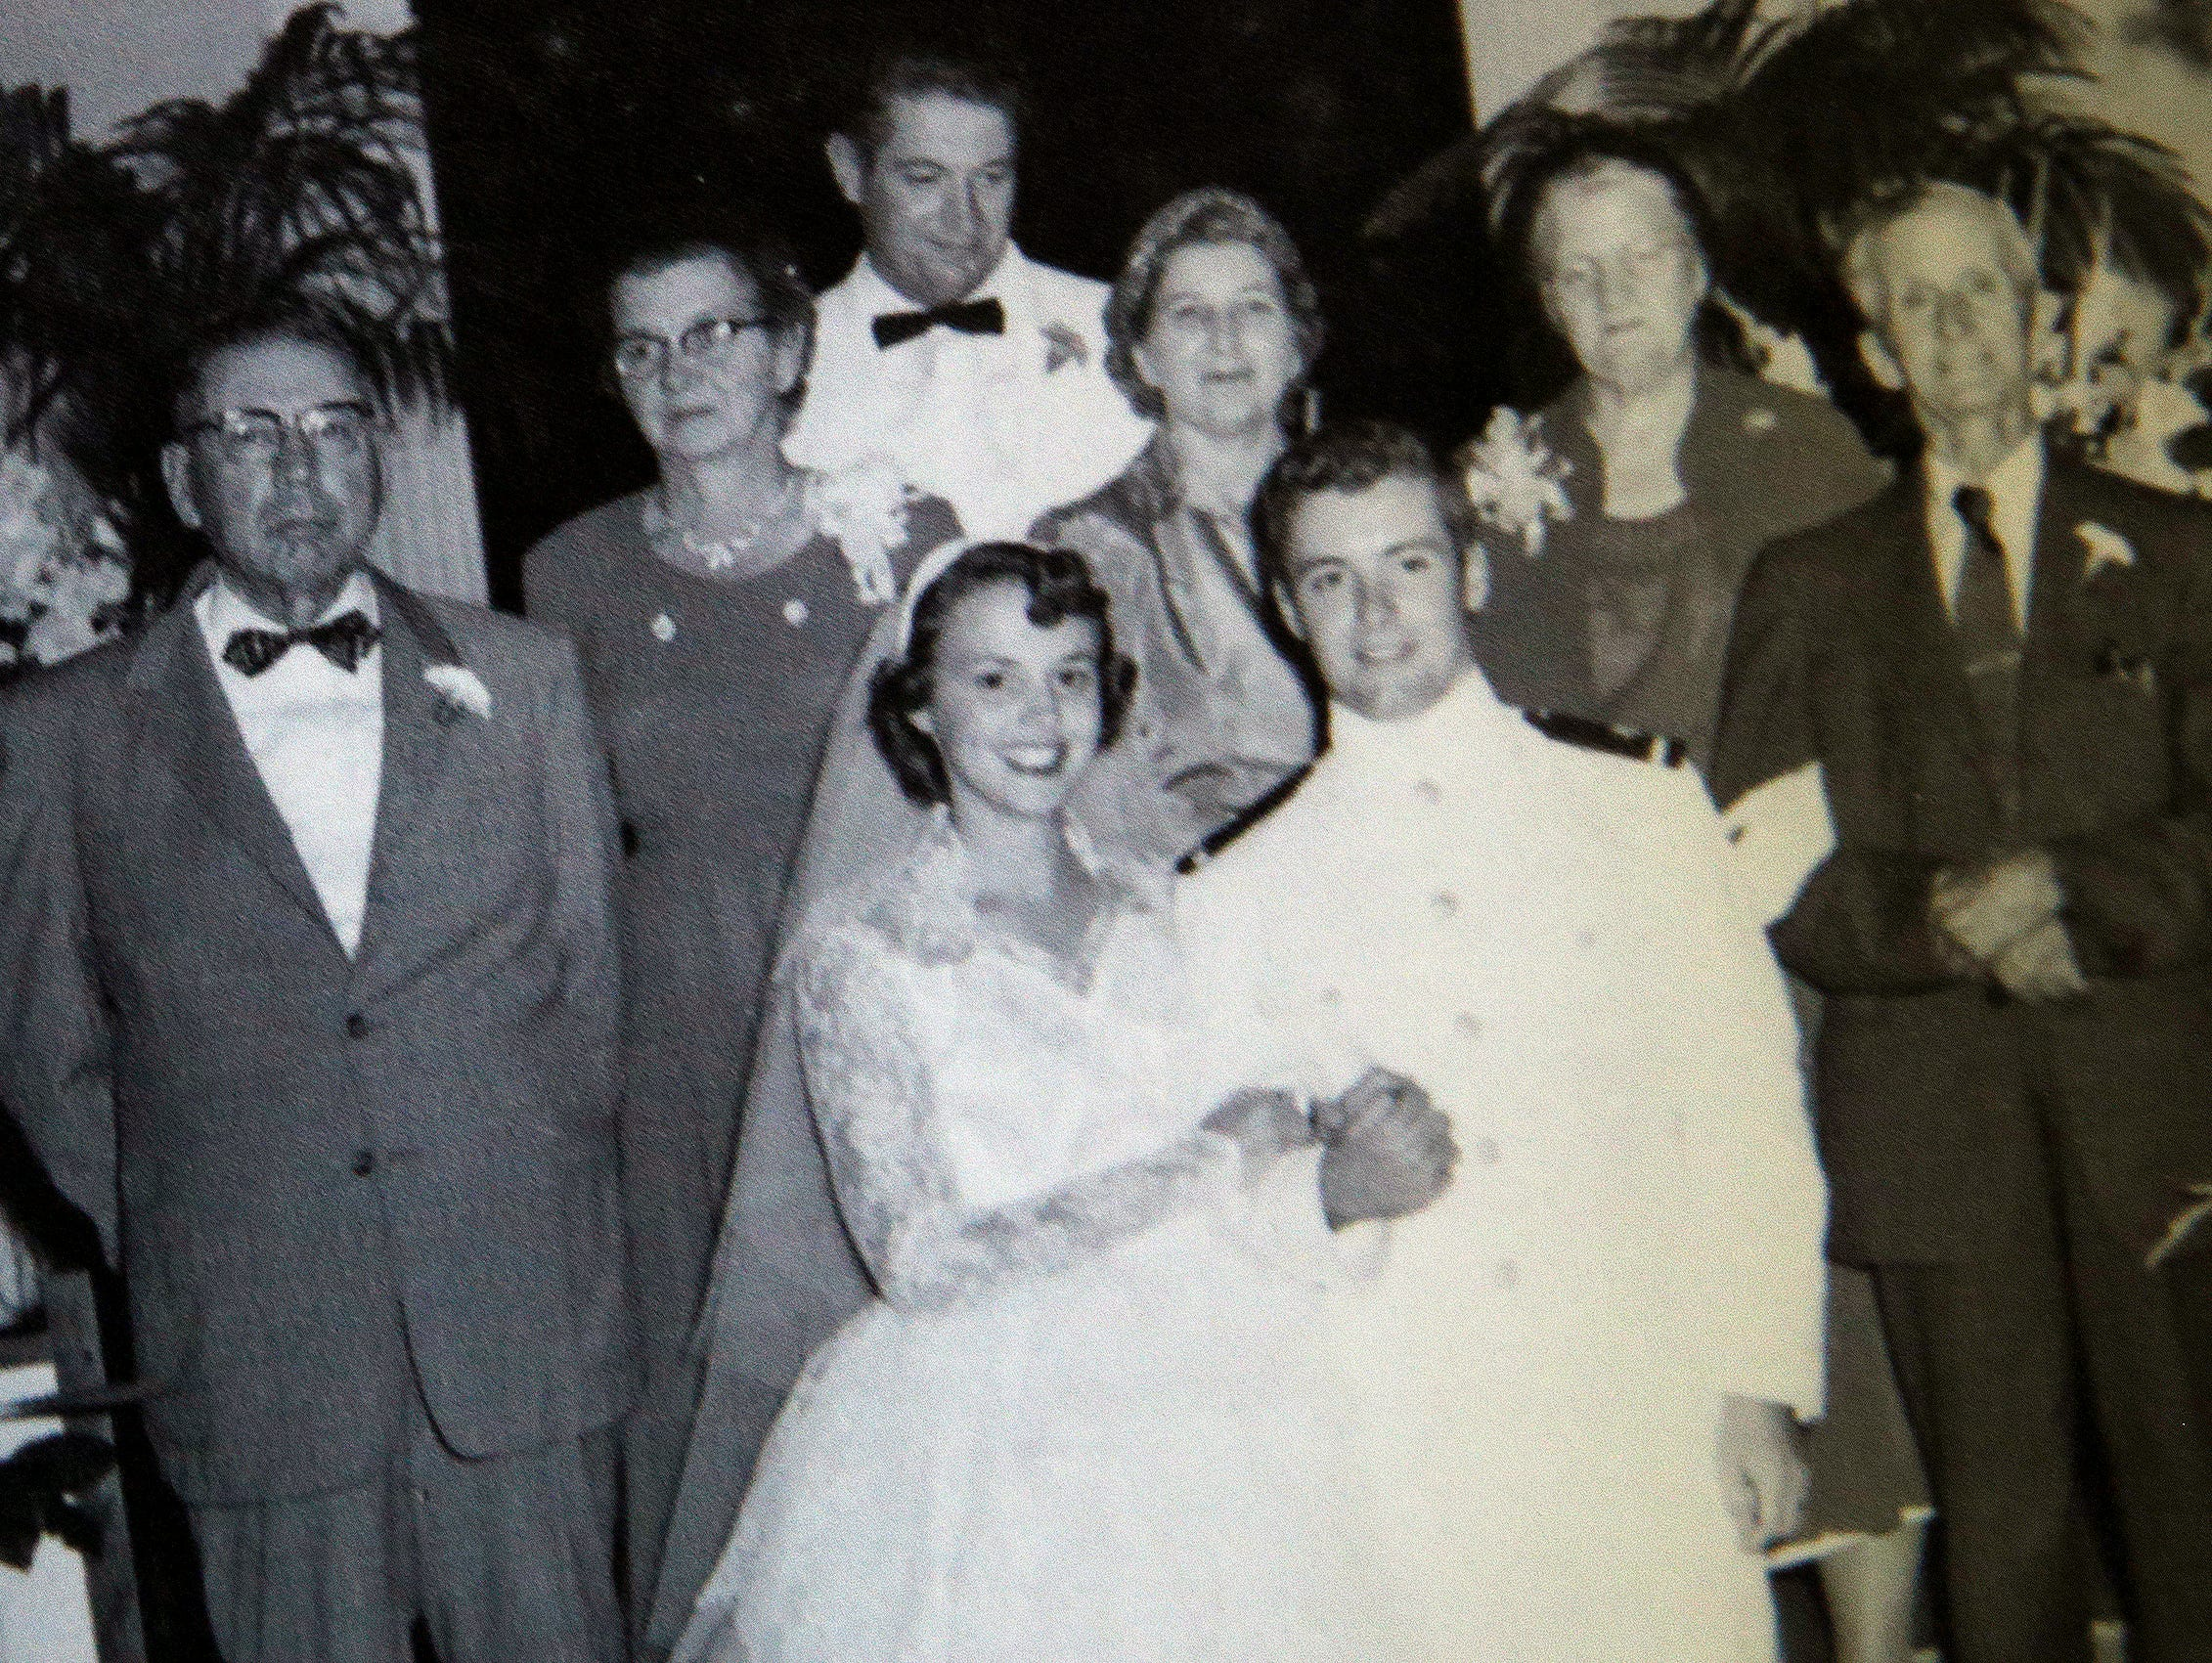 """""""My grandfather said I should wrap myself in the head with a hammer to grow the 1/2 inch I needed to become a pilot,"""" said Jim Graham, on June 28, 2016. Grahams grandfather, furthest to the left, is pictured in this wedding photo taken five hours after Grahams graduation from college."""